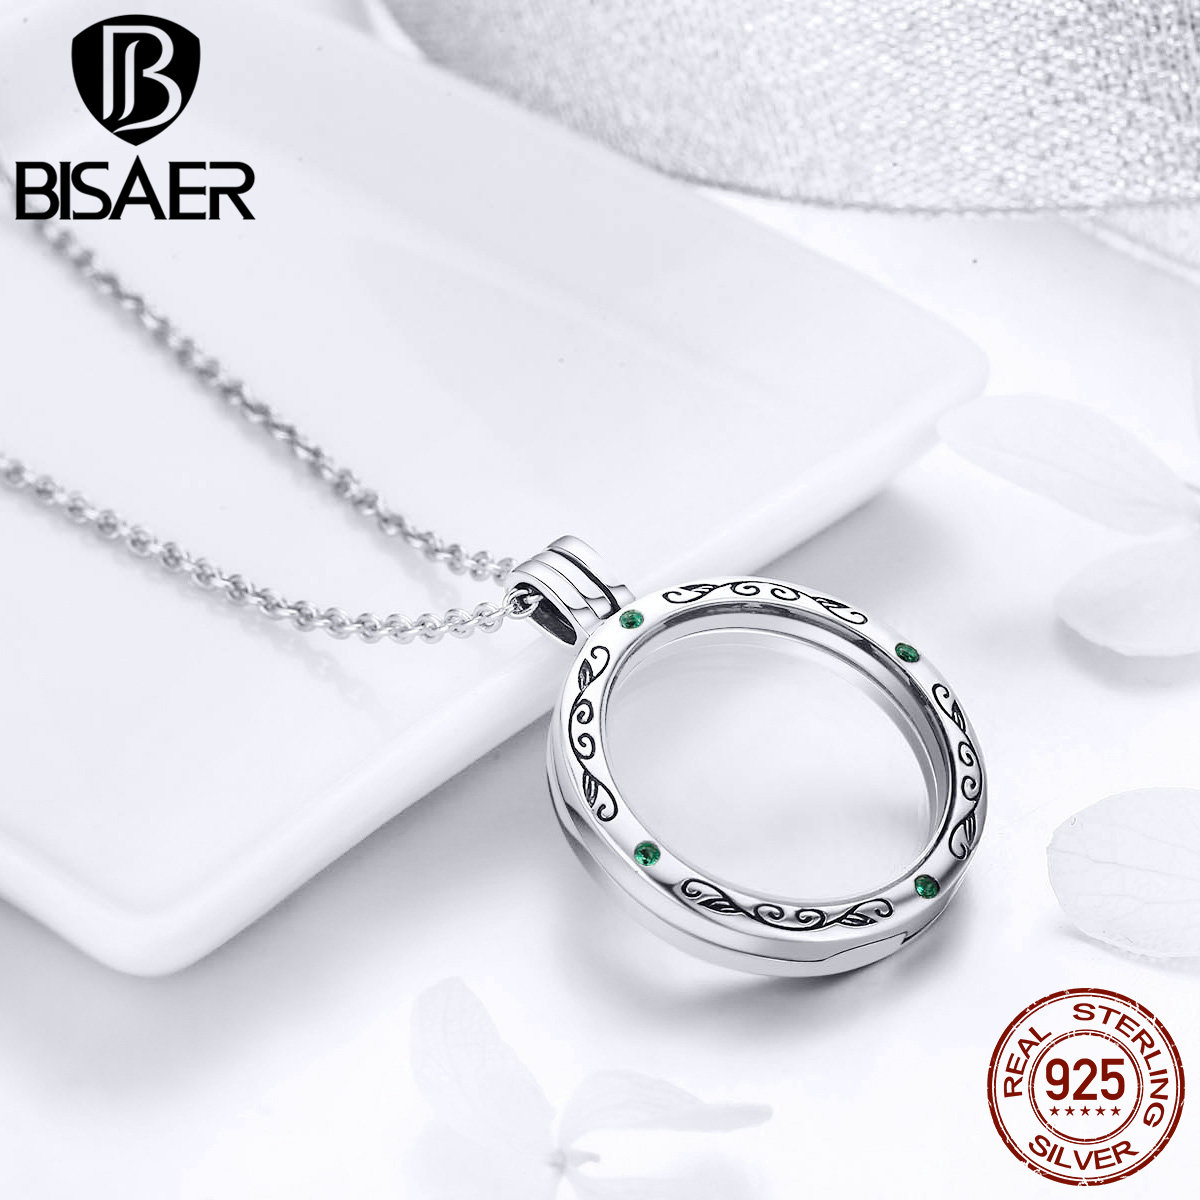 Authentic 100% 925 Sterling Silver Round Power Box Petite Memories Long Chain Necklace